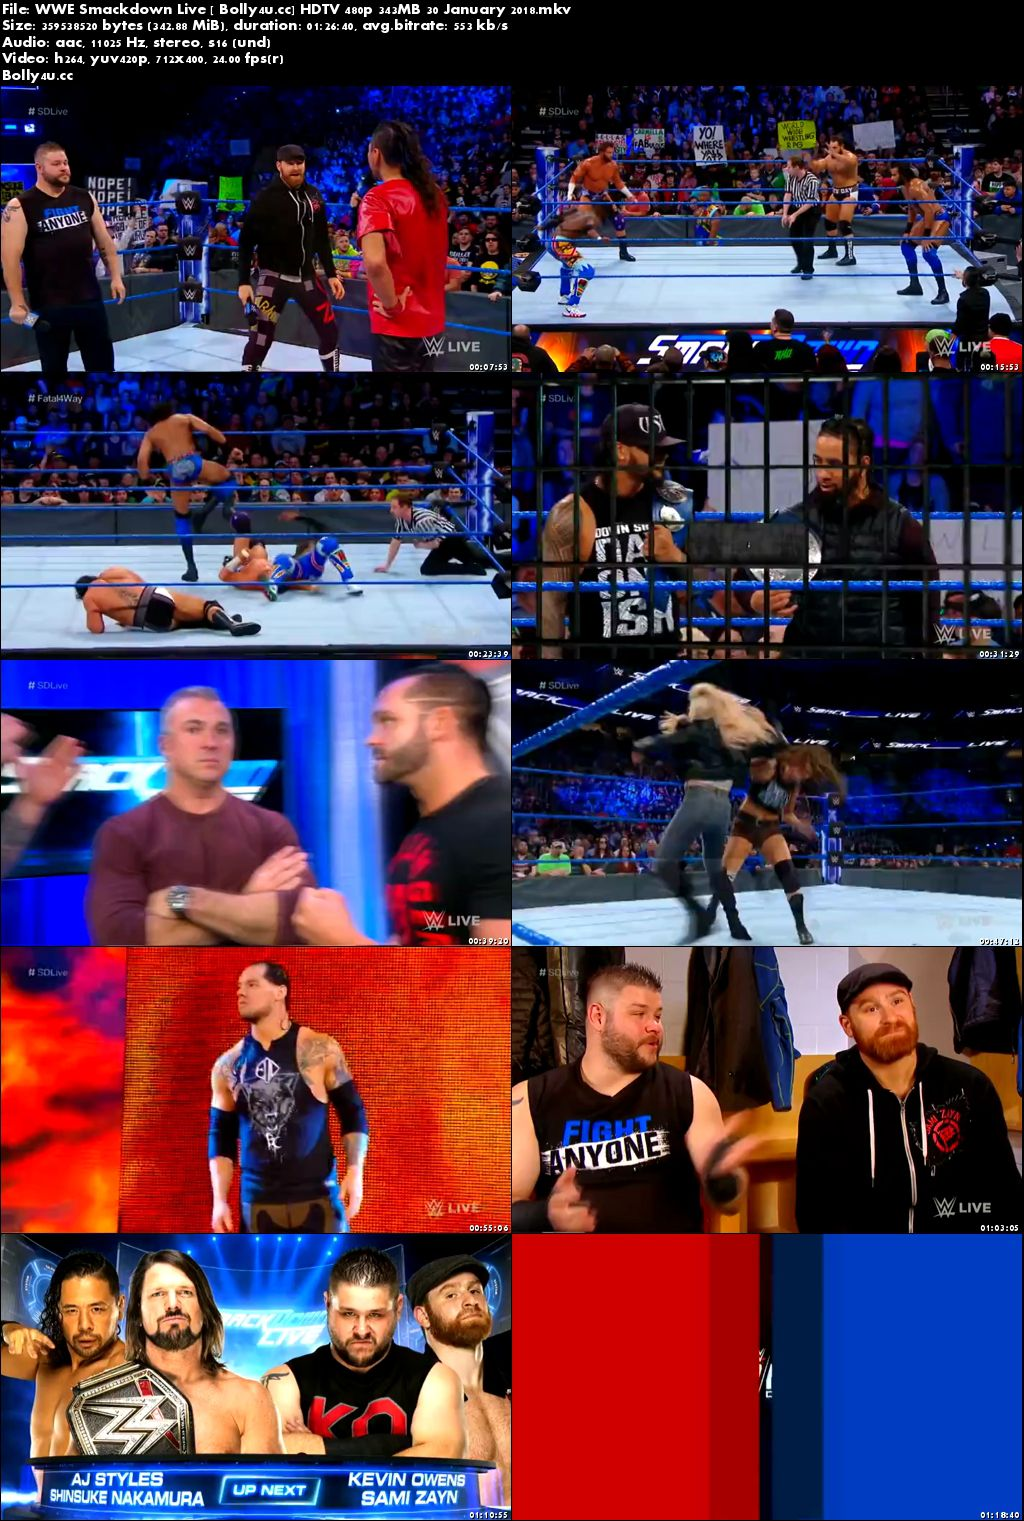 WWE Smackdown Live HDTV 480p 350MB 30 January 2018 Download